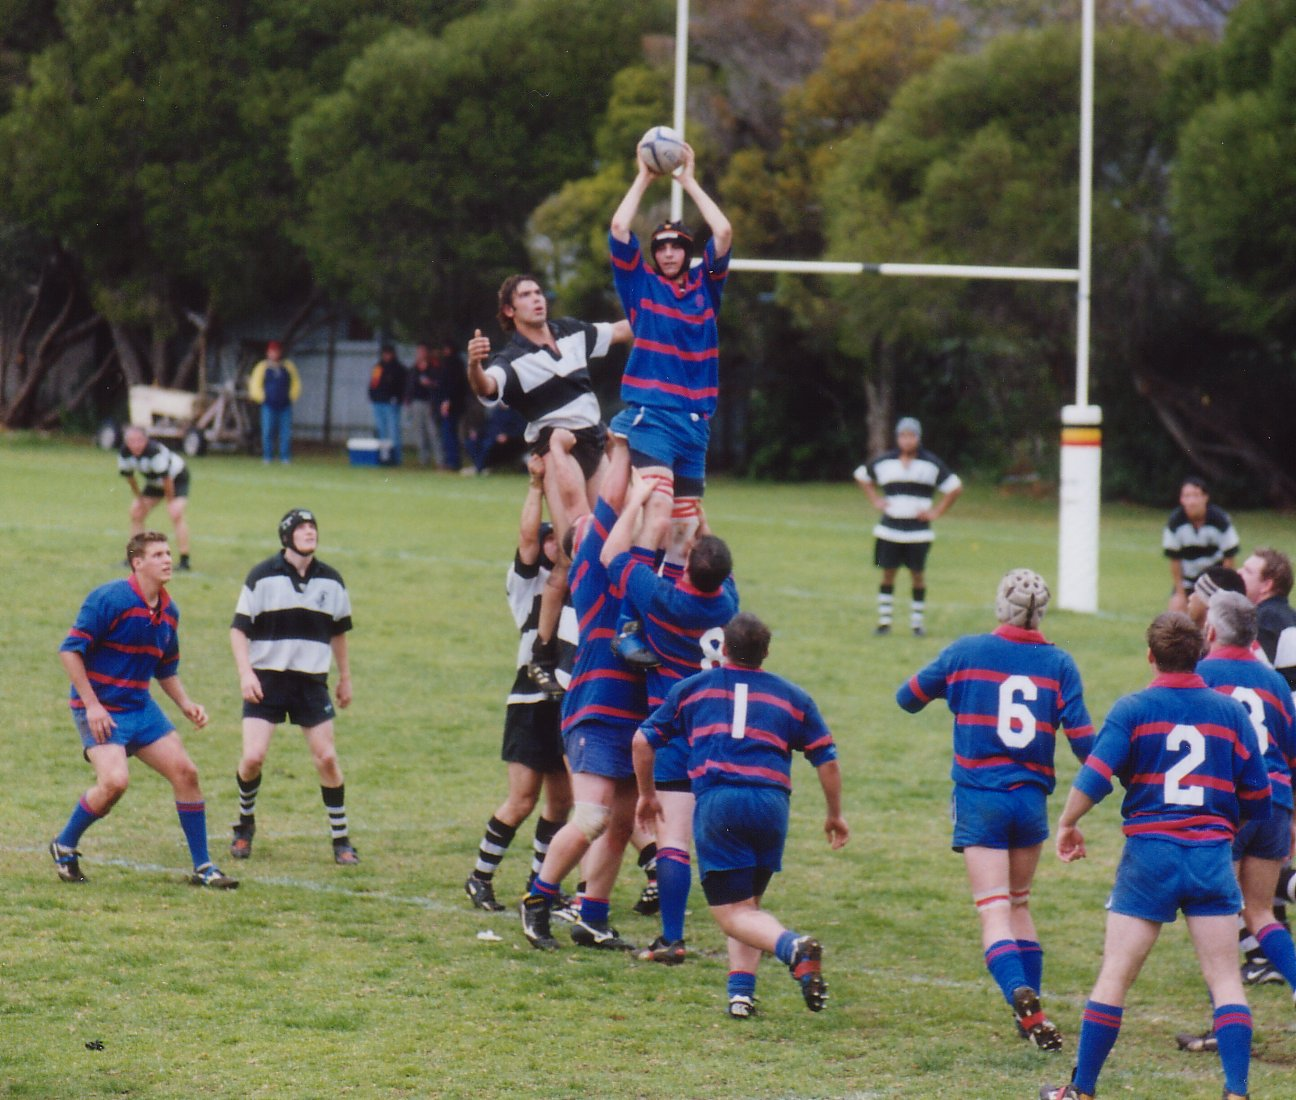 78sep-lineout-2nds